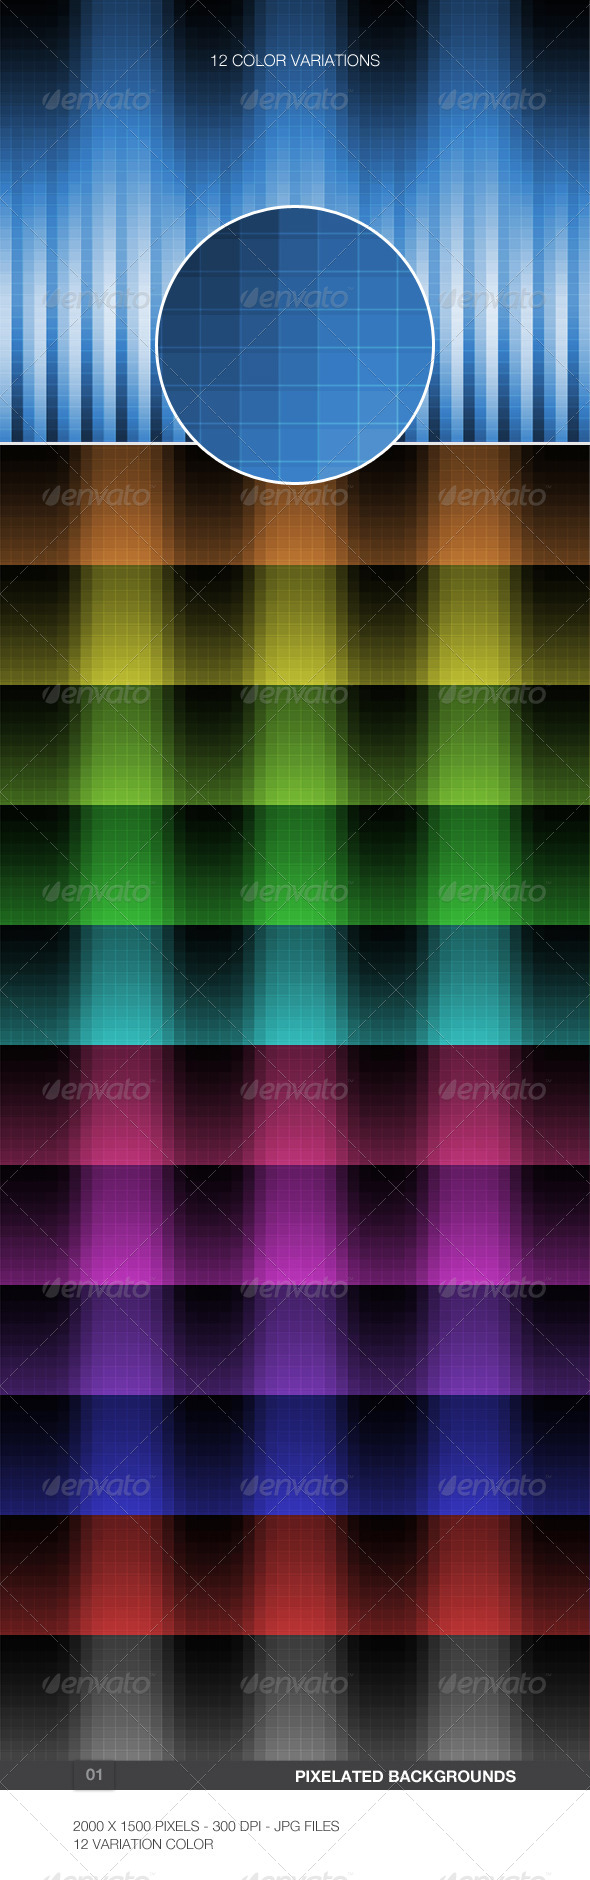 GraphicRiver Pixelated Backgrounds 01 5901839